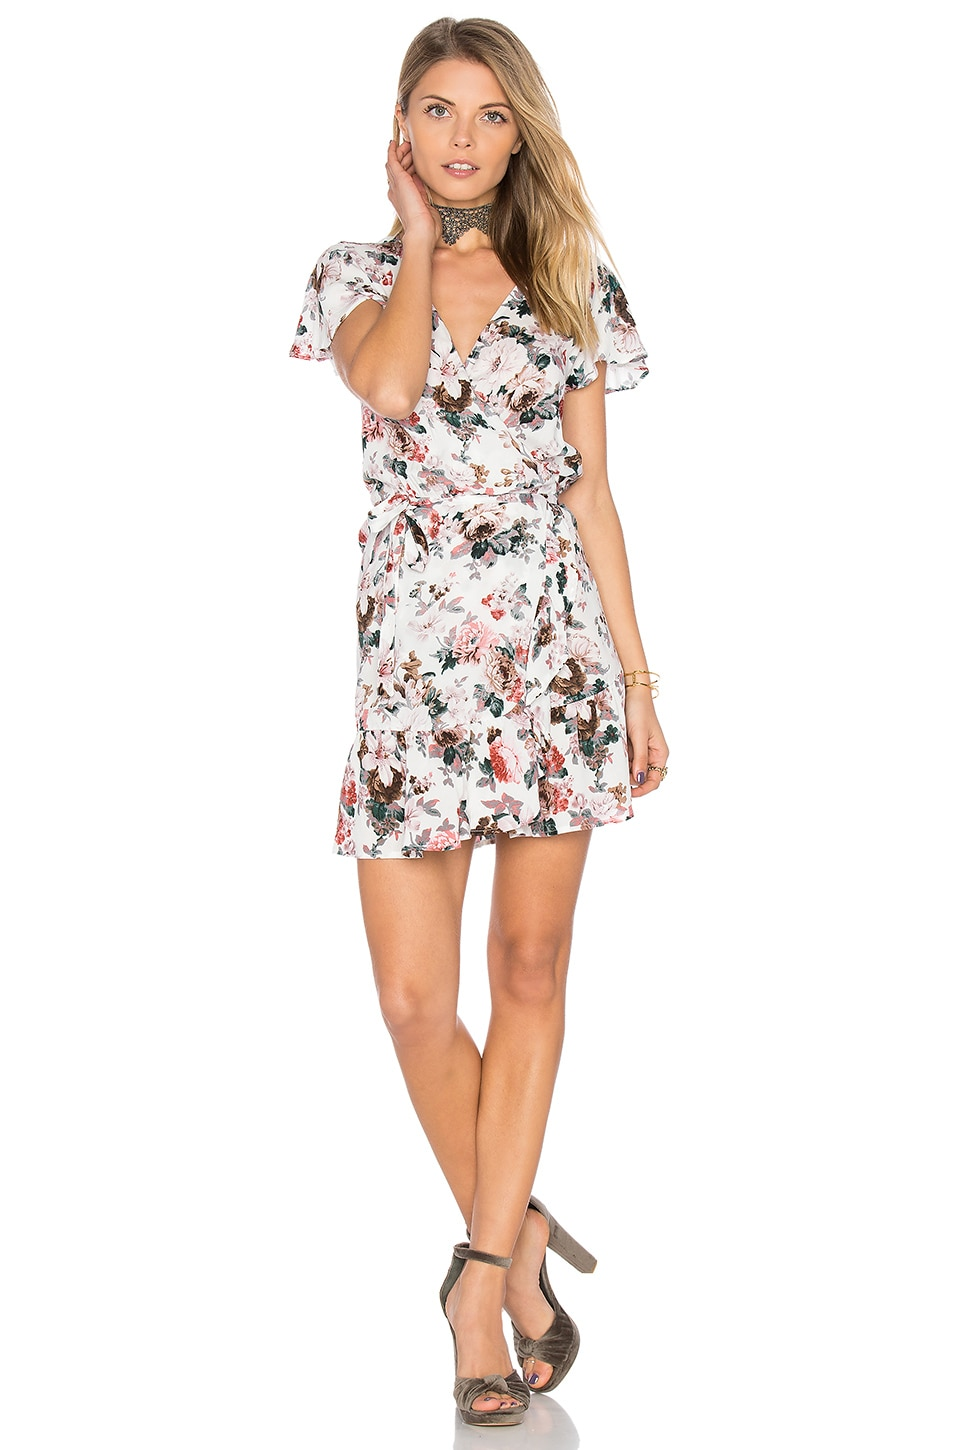 AUGUSTE Frill Wrap Mini Dress in Dusky Blooms Natural